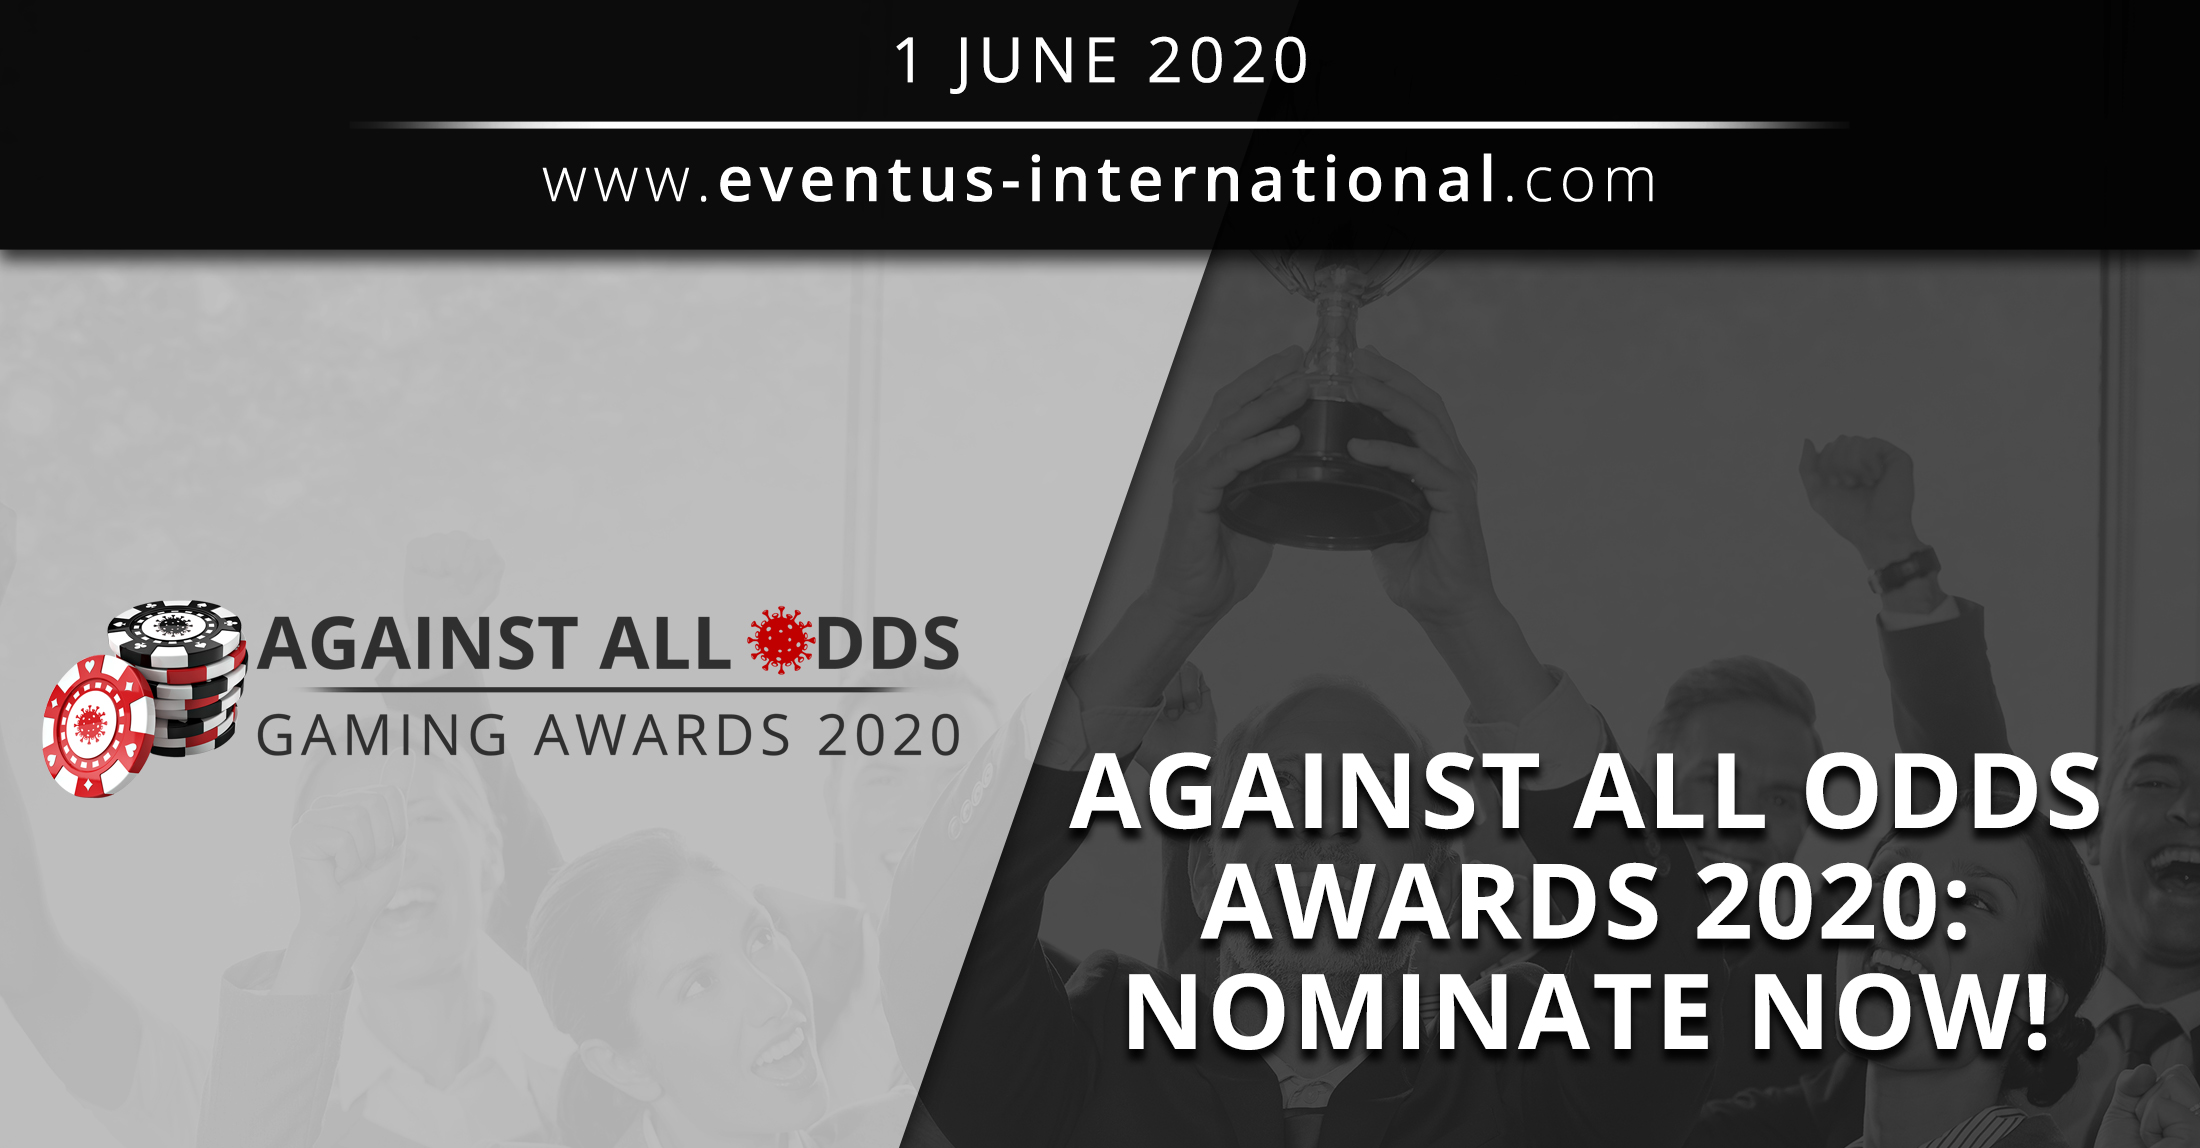 Against All Odds Gaming Awards 2020 To Recognize And Reward Companies